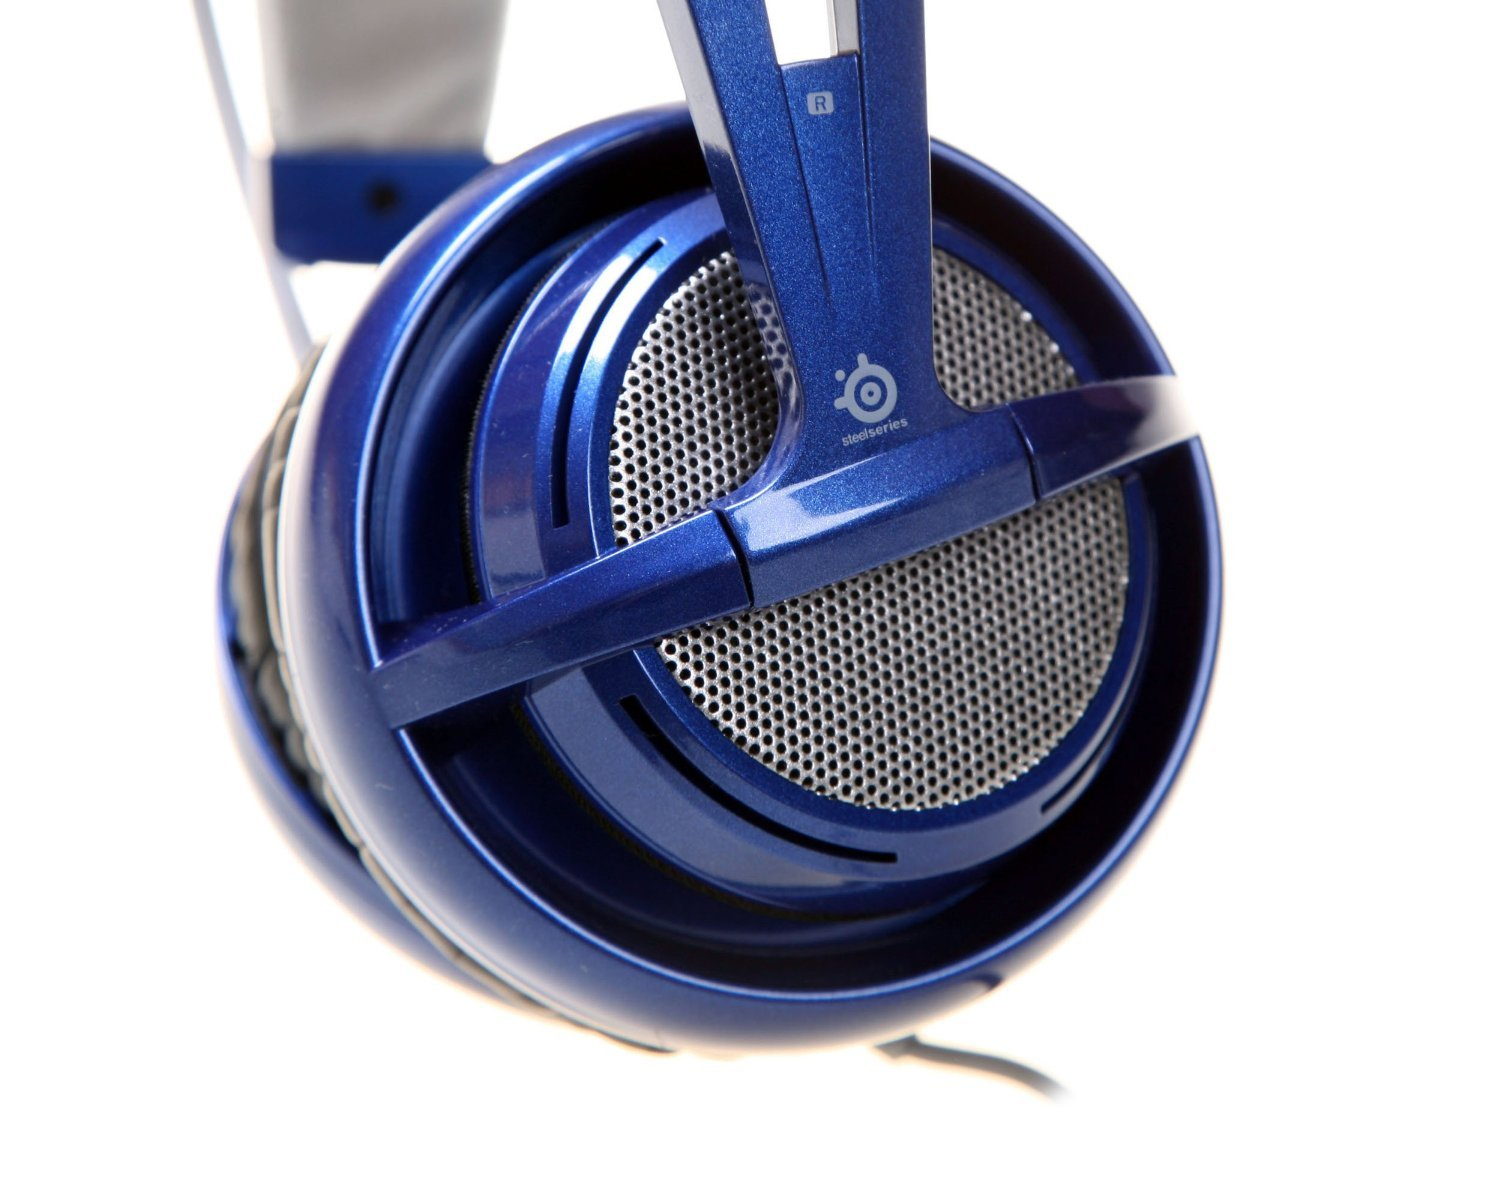 Amazon.com: SteelSeries Siberia V2 FullSize Headset with Microphone | Blue: Electronics